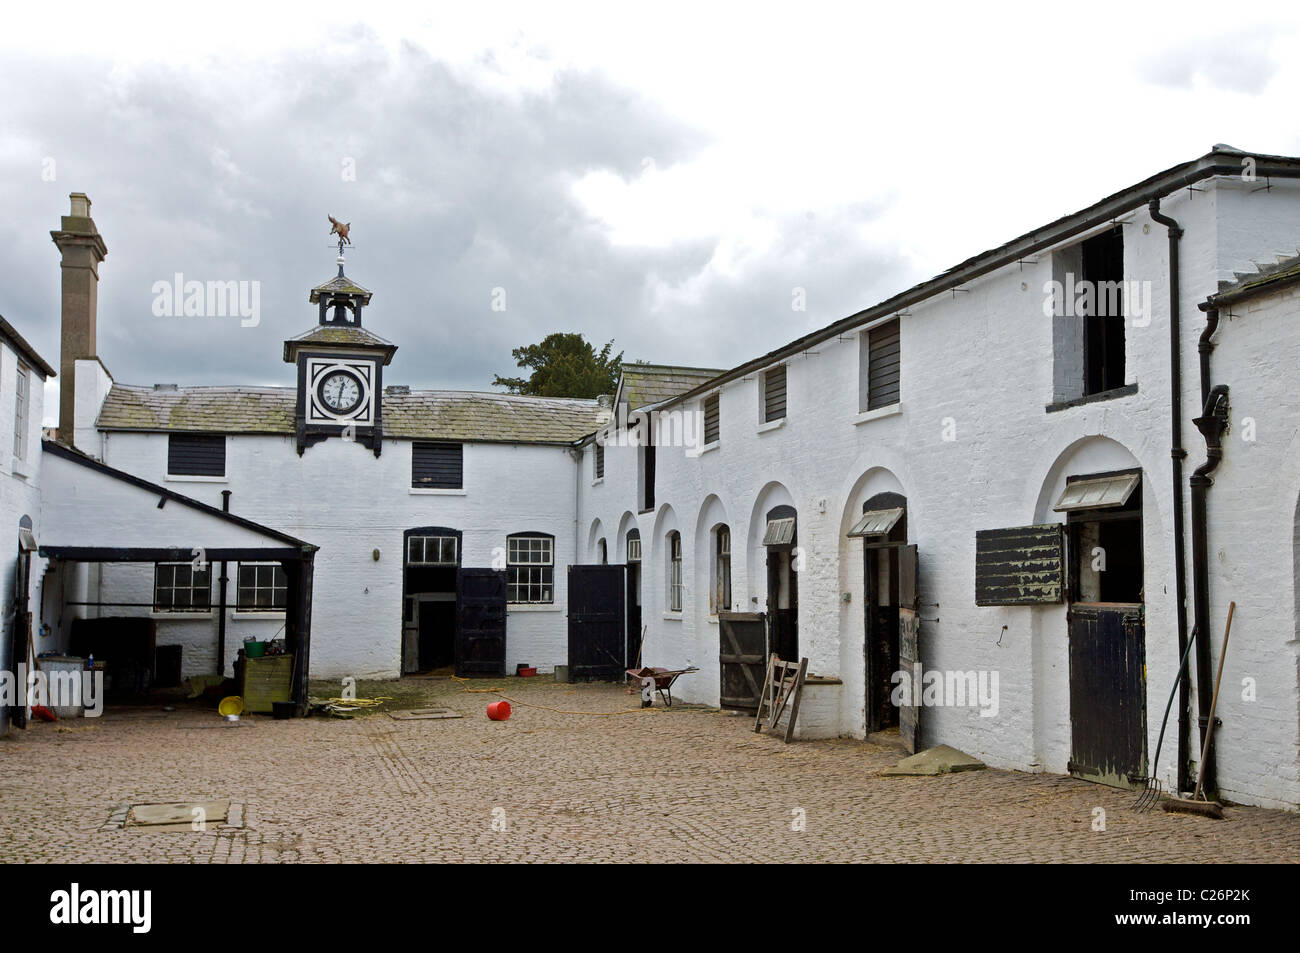 The stable yard at Whatton Gardens, Kegworth, Leicestershire, England, UK - Stock Image